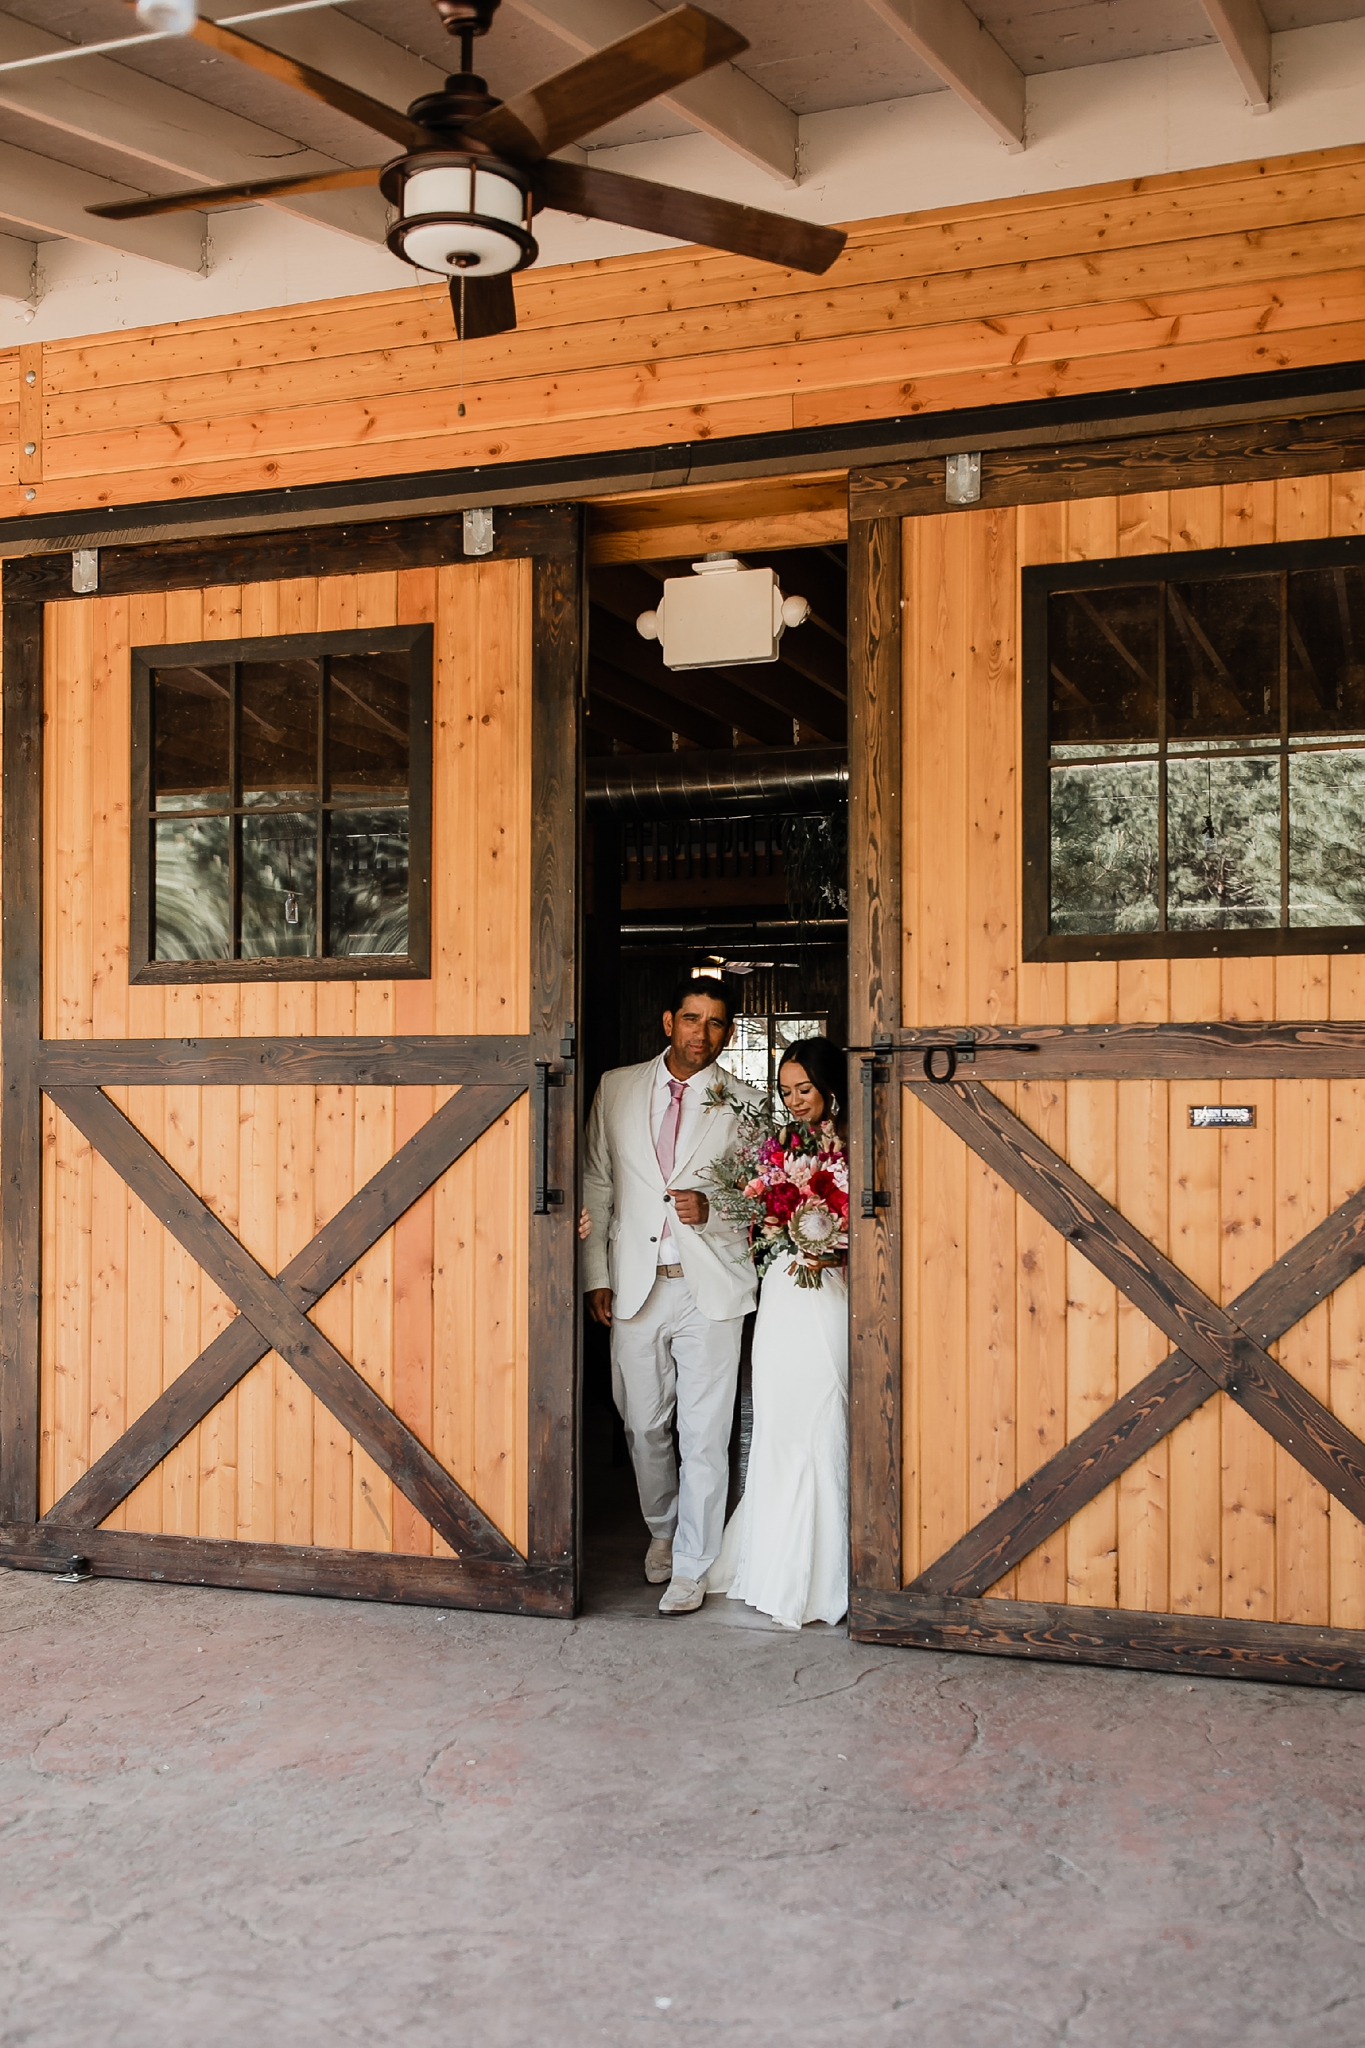 Alicia+lucia+photography+-+albuquerque+wedding+photographer+-+santa+fe+wedding+photography+-+new+mexico+wedding+photographer+-+new+mexico+wedding+-+new+mexico+wedding+-+barn+wedding+-+enchanted+vine+barn+wedding+-+ruidoso+wedding_0090.jpg